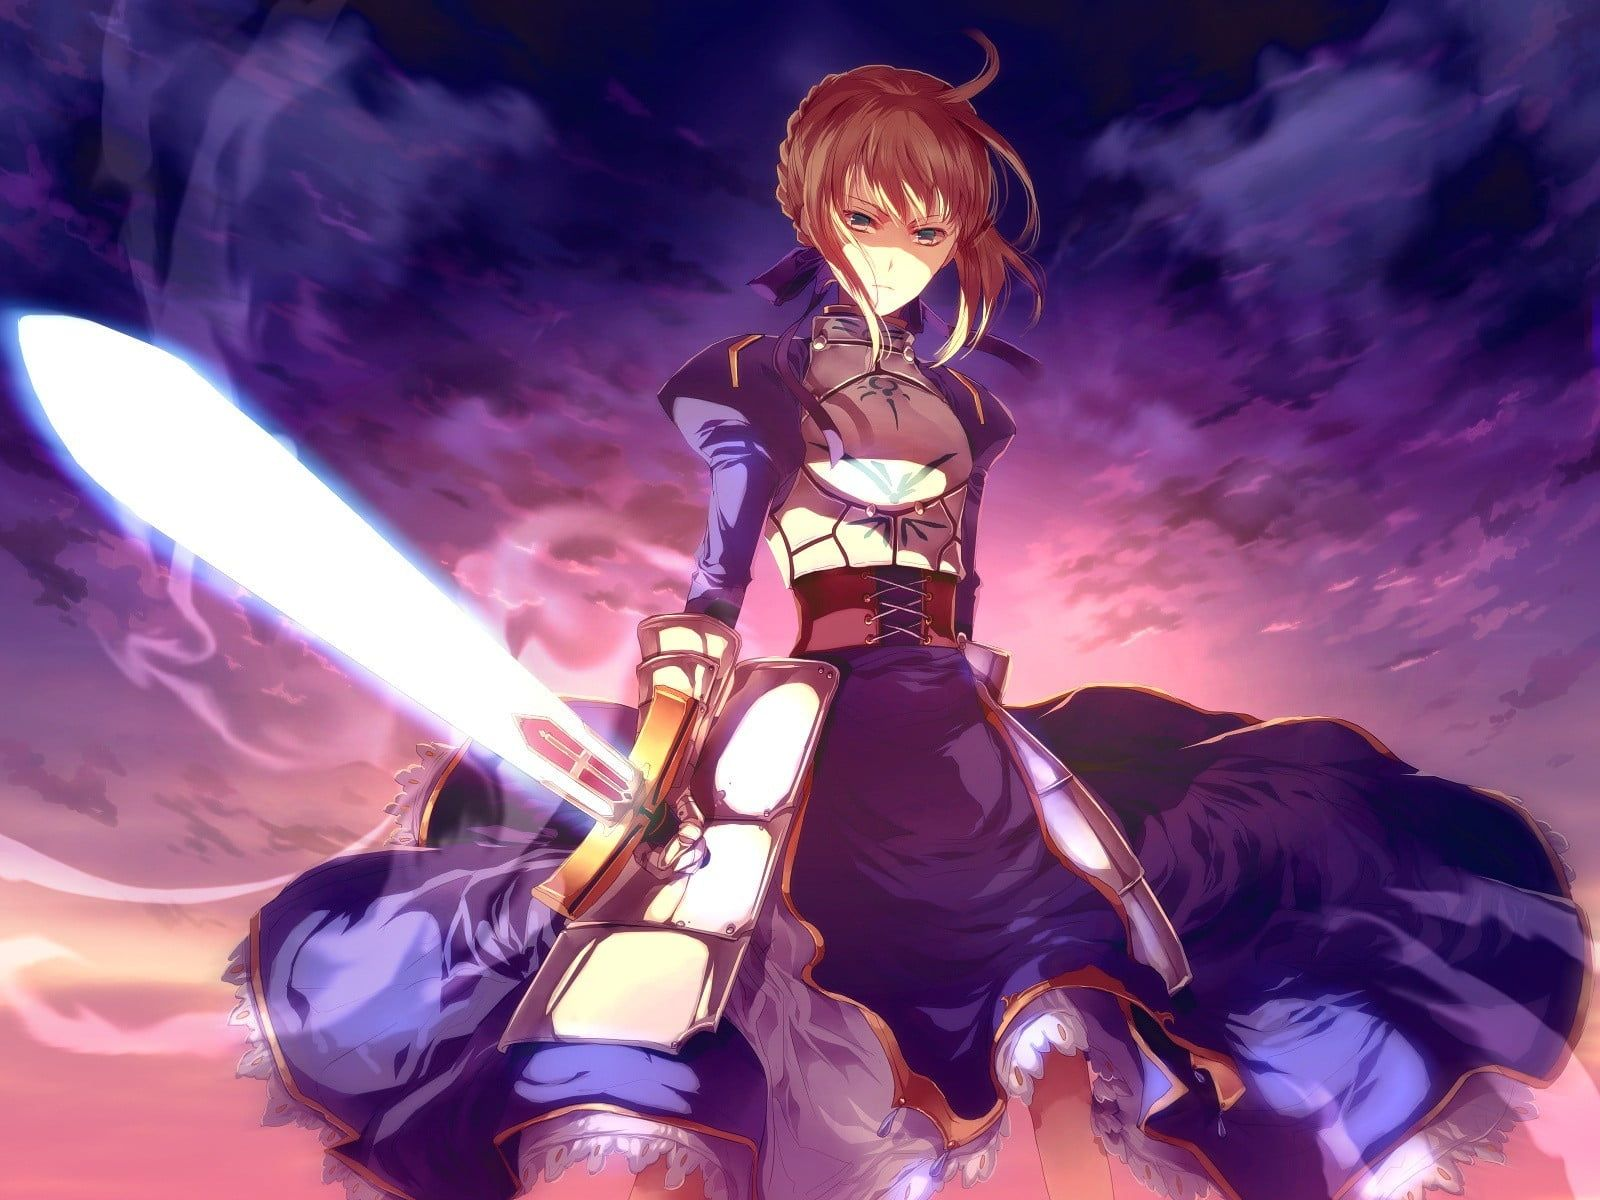 Fate Series anime TypeMoon Saber Fate/Zero Fate/Stay